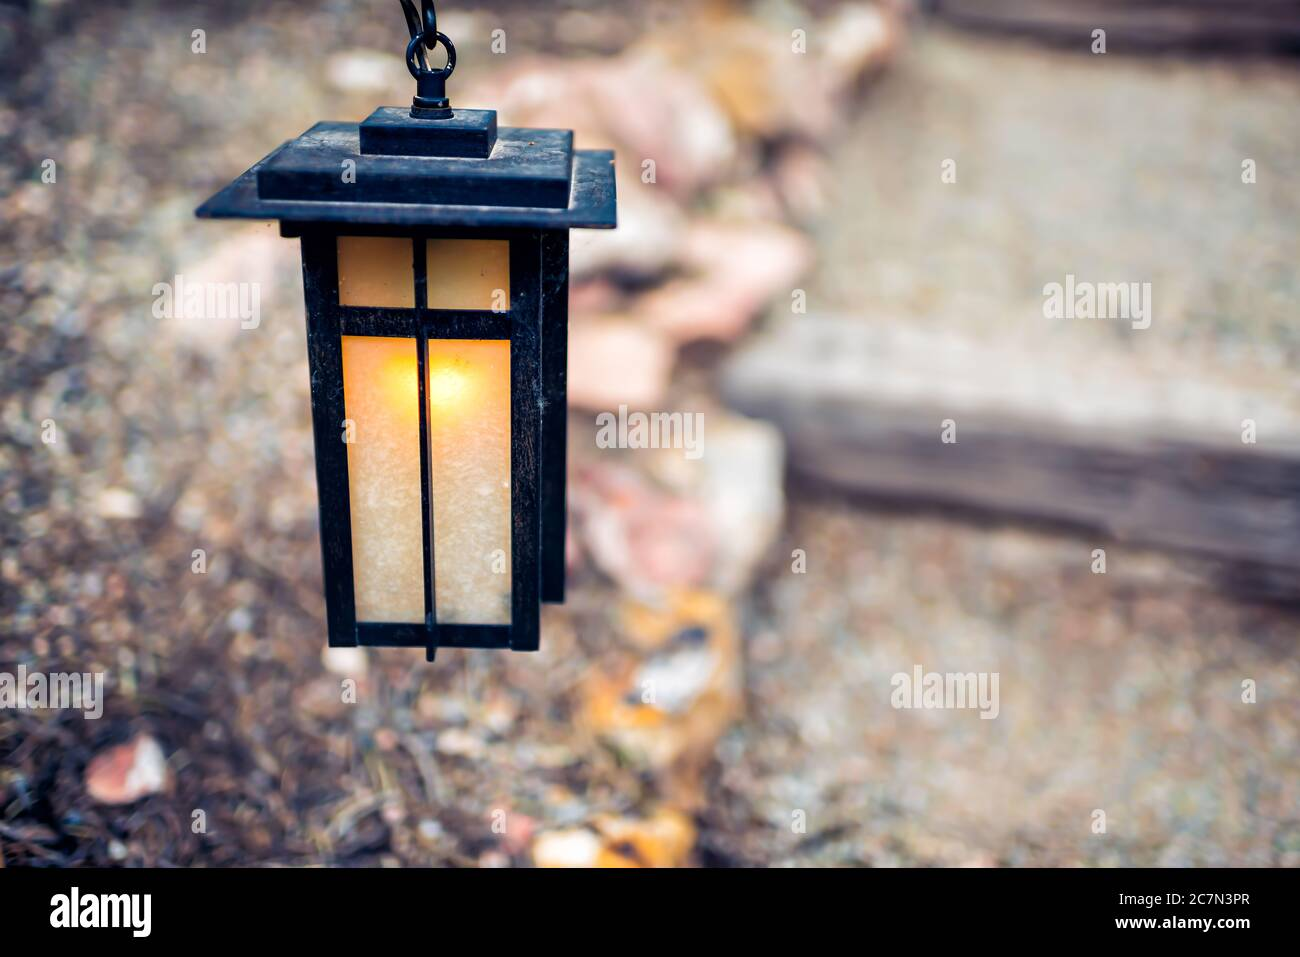 Japan Hanging Lantern Lamp In Japanese Garden With Stone Steps Stairs Path In Blurry Bokeh Background And Illuminated Light In Evening Night Stock Photo Alamy